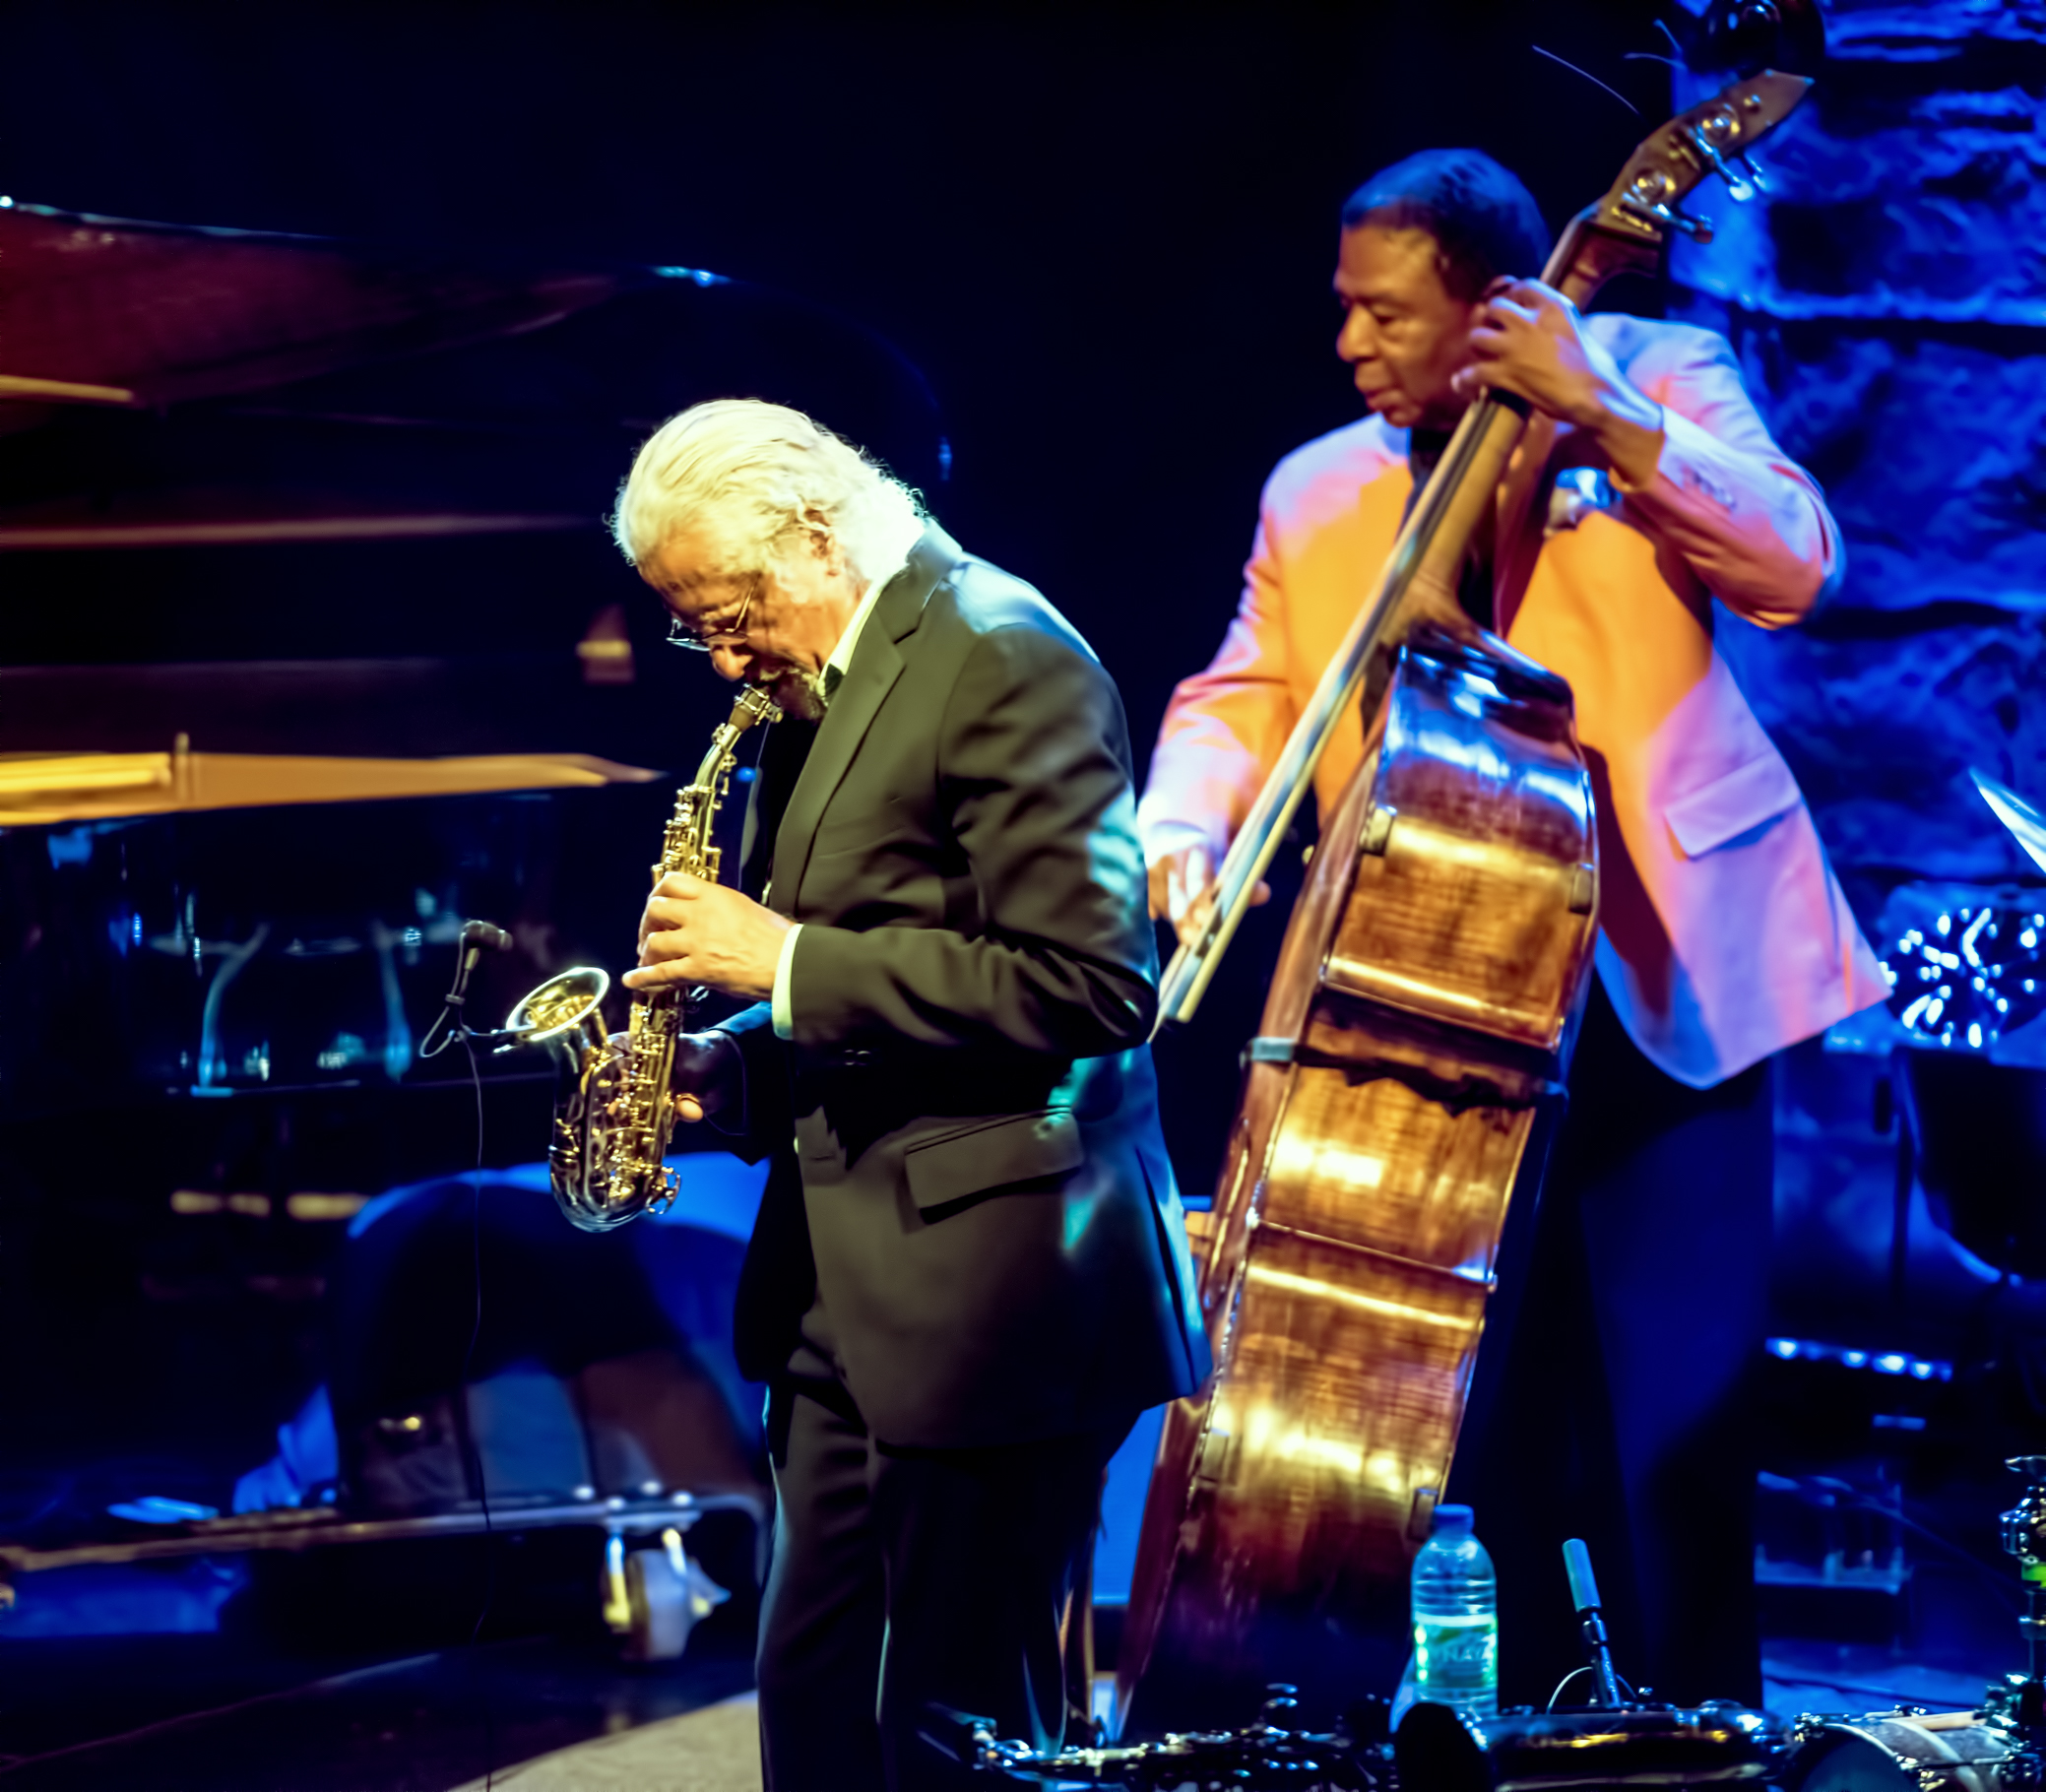 Gary Bartz and Buster Williams with Heads of State at the Montreal International Jazz Festival 2015